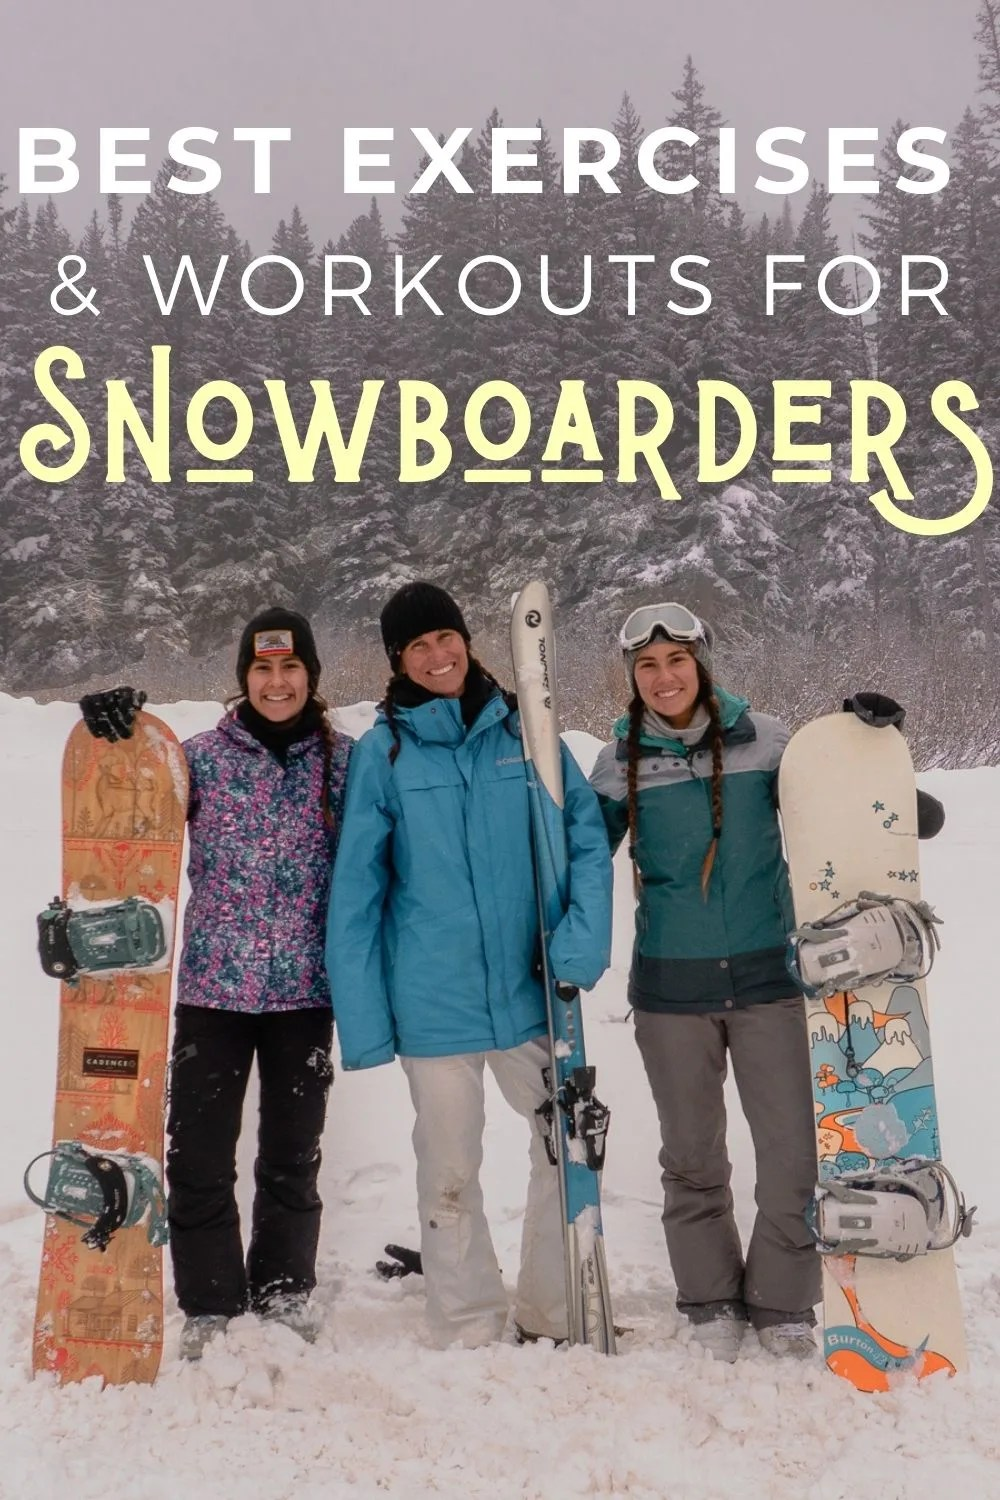 Best Exercises And Workouts For Snowboarders